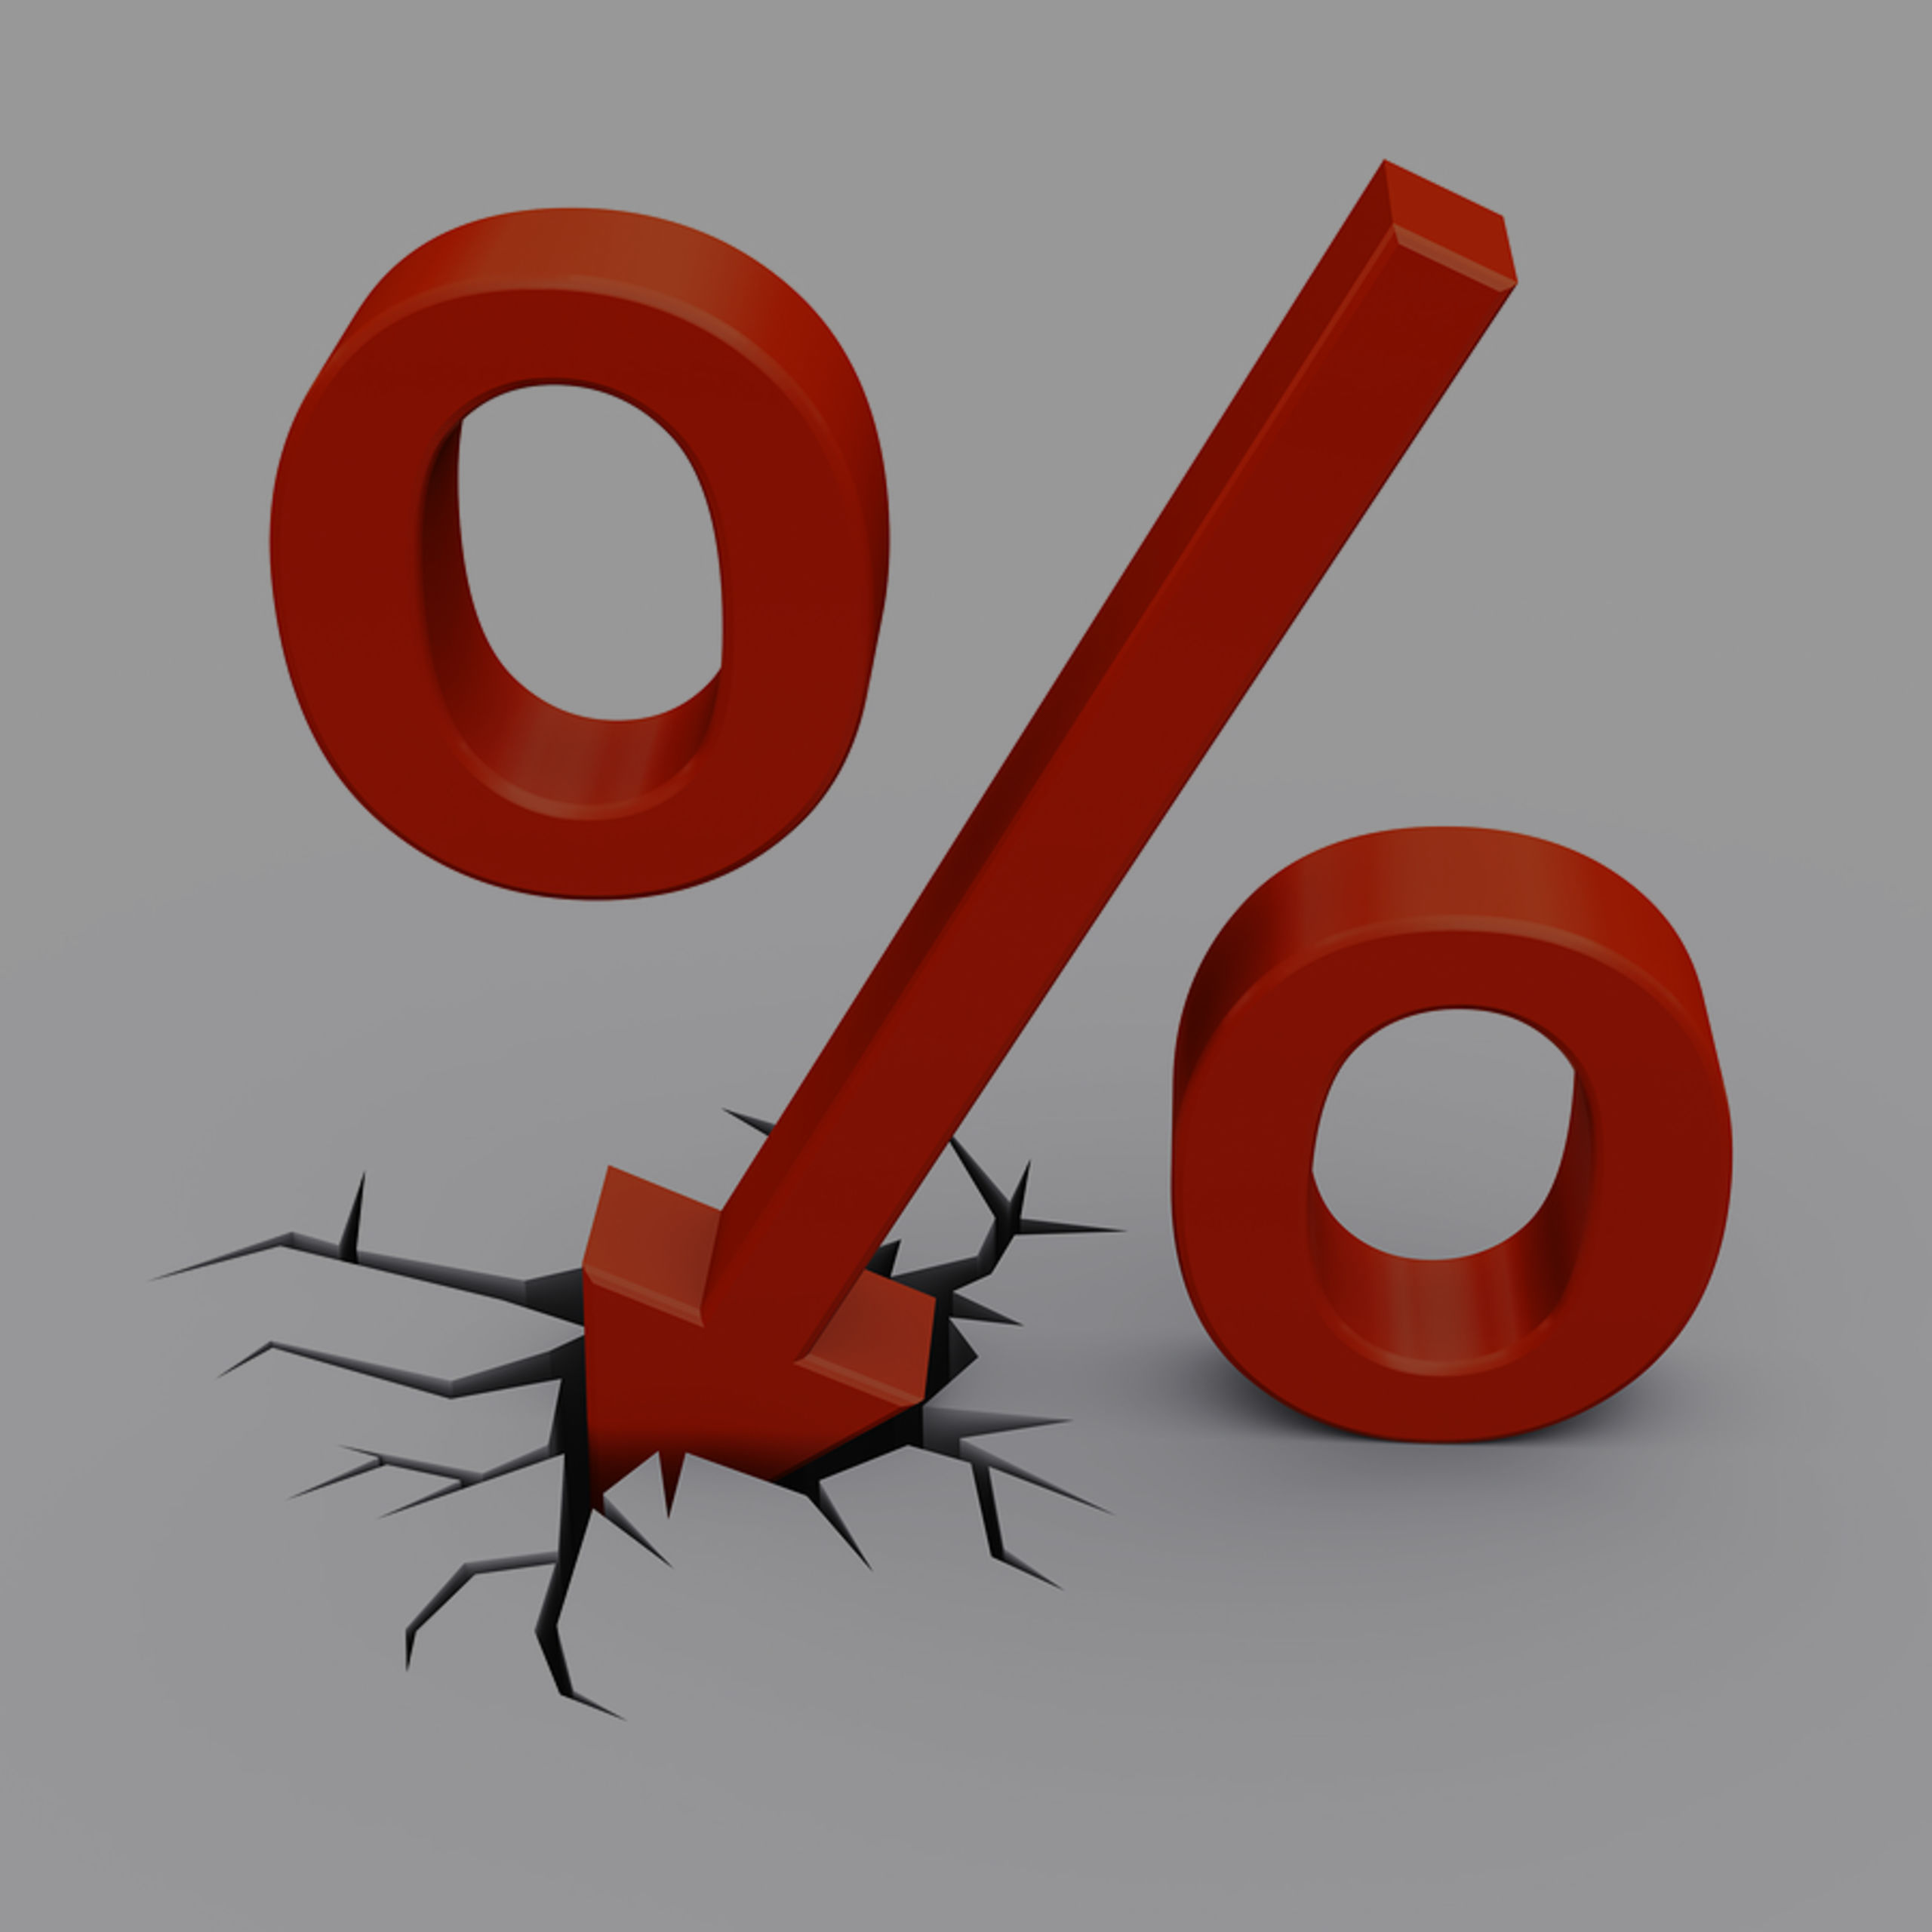 Mortgage Rates and Purchasing Power